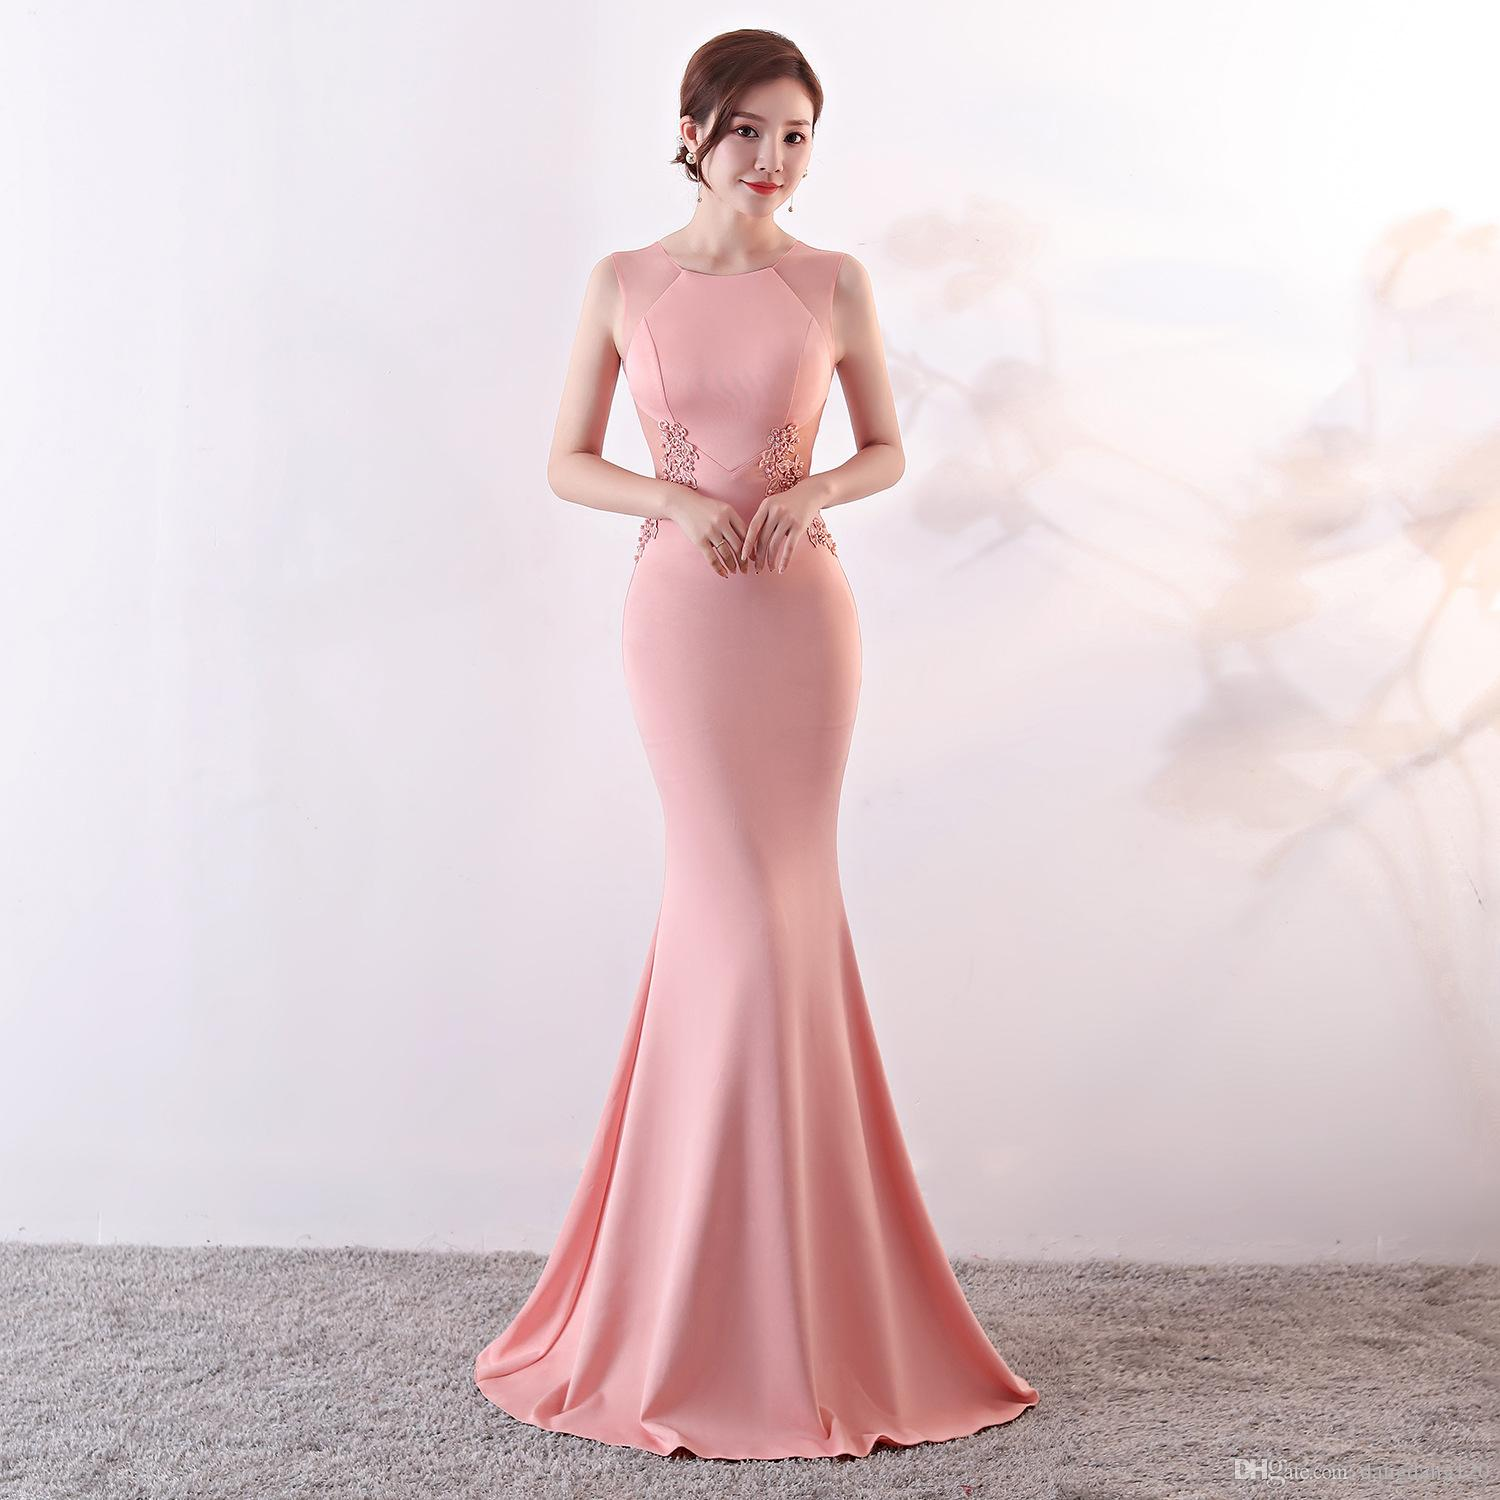 ... long evening dresses elegant Lace flowers beading sexy mermaid trumpet  long prom party dress elasticity robe ... 6875f10afcd7